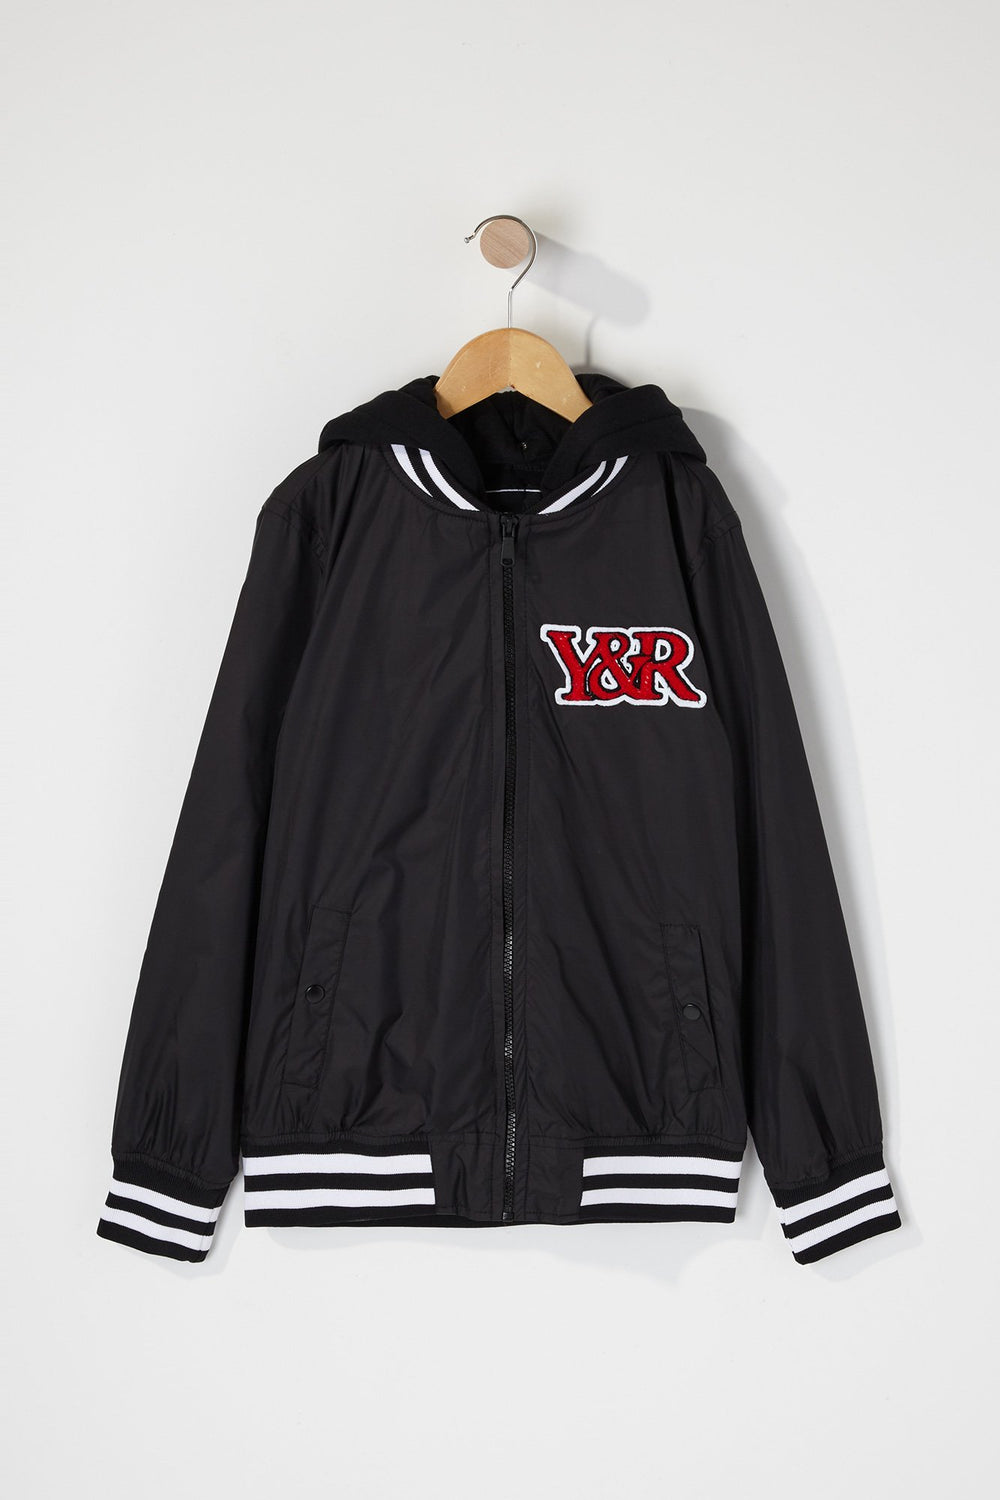 Young & Reckless Boys Bomber Logo Patch Jacket Black